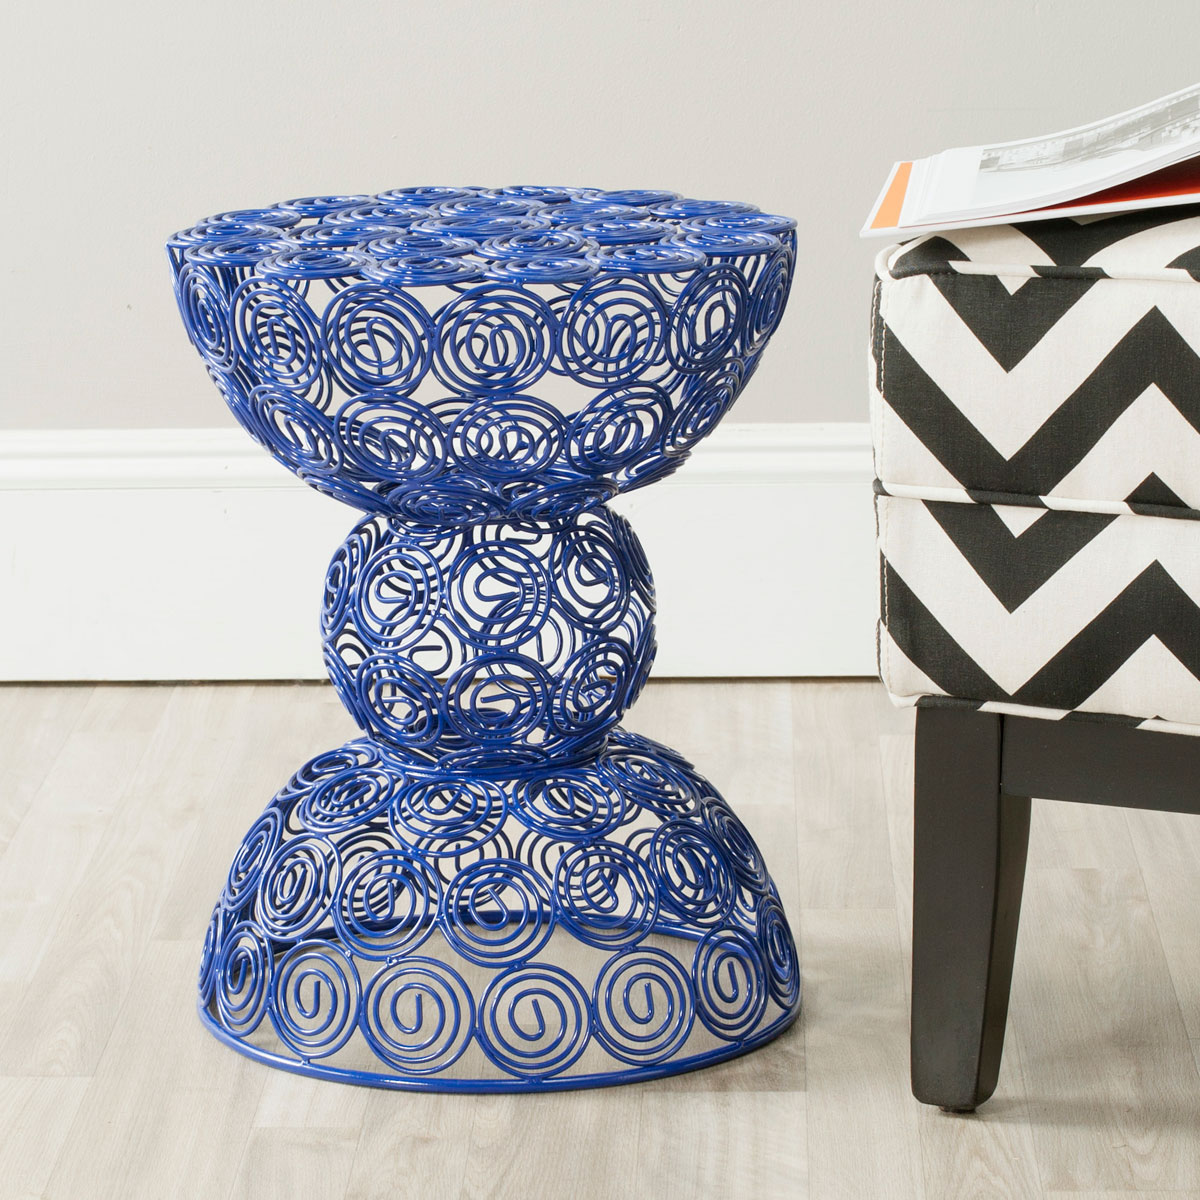 accent tables stools furniture safavieh room blue ceramic table share this product nautical bedroom lamps outdoor stacking side bunnings set decorative boxes with lids wood